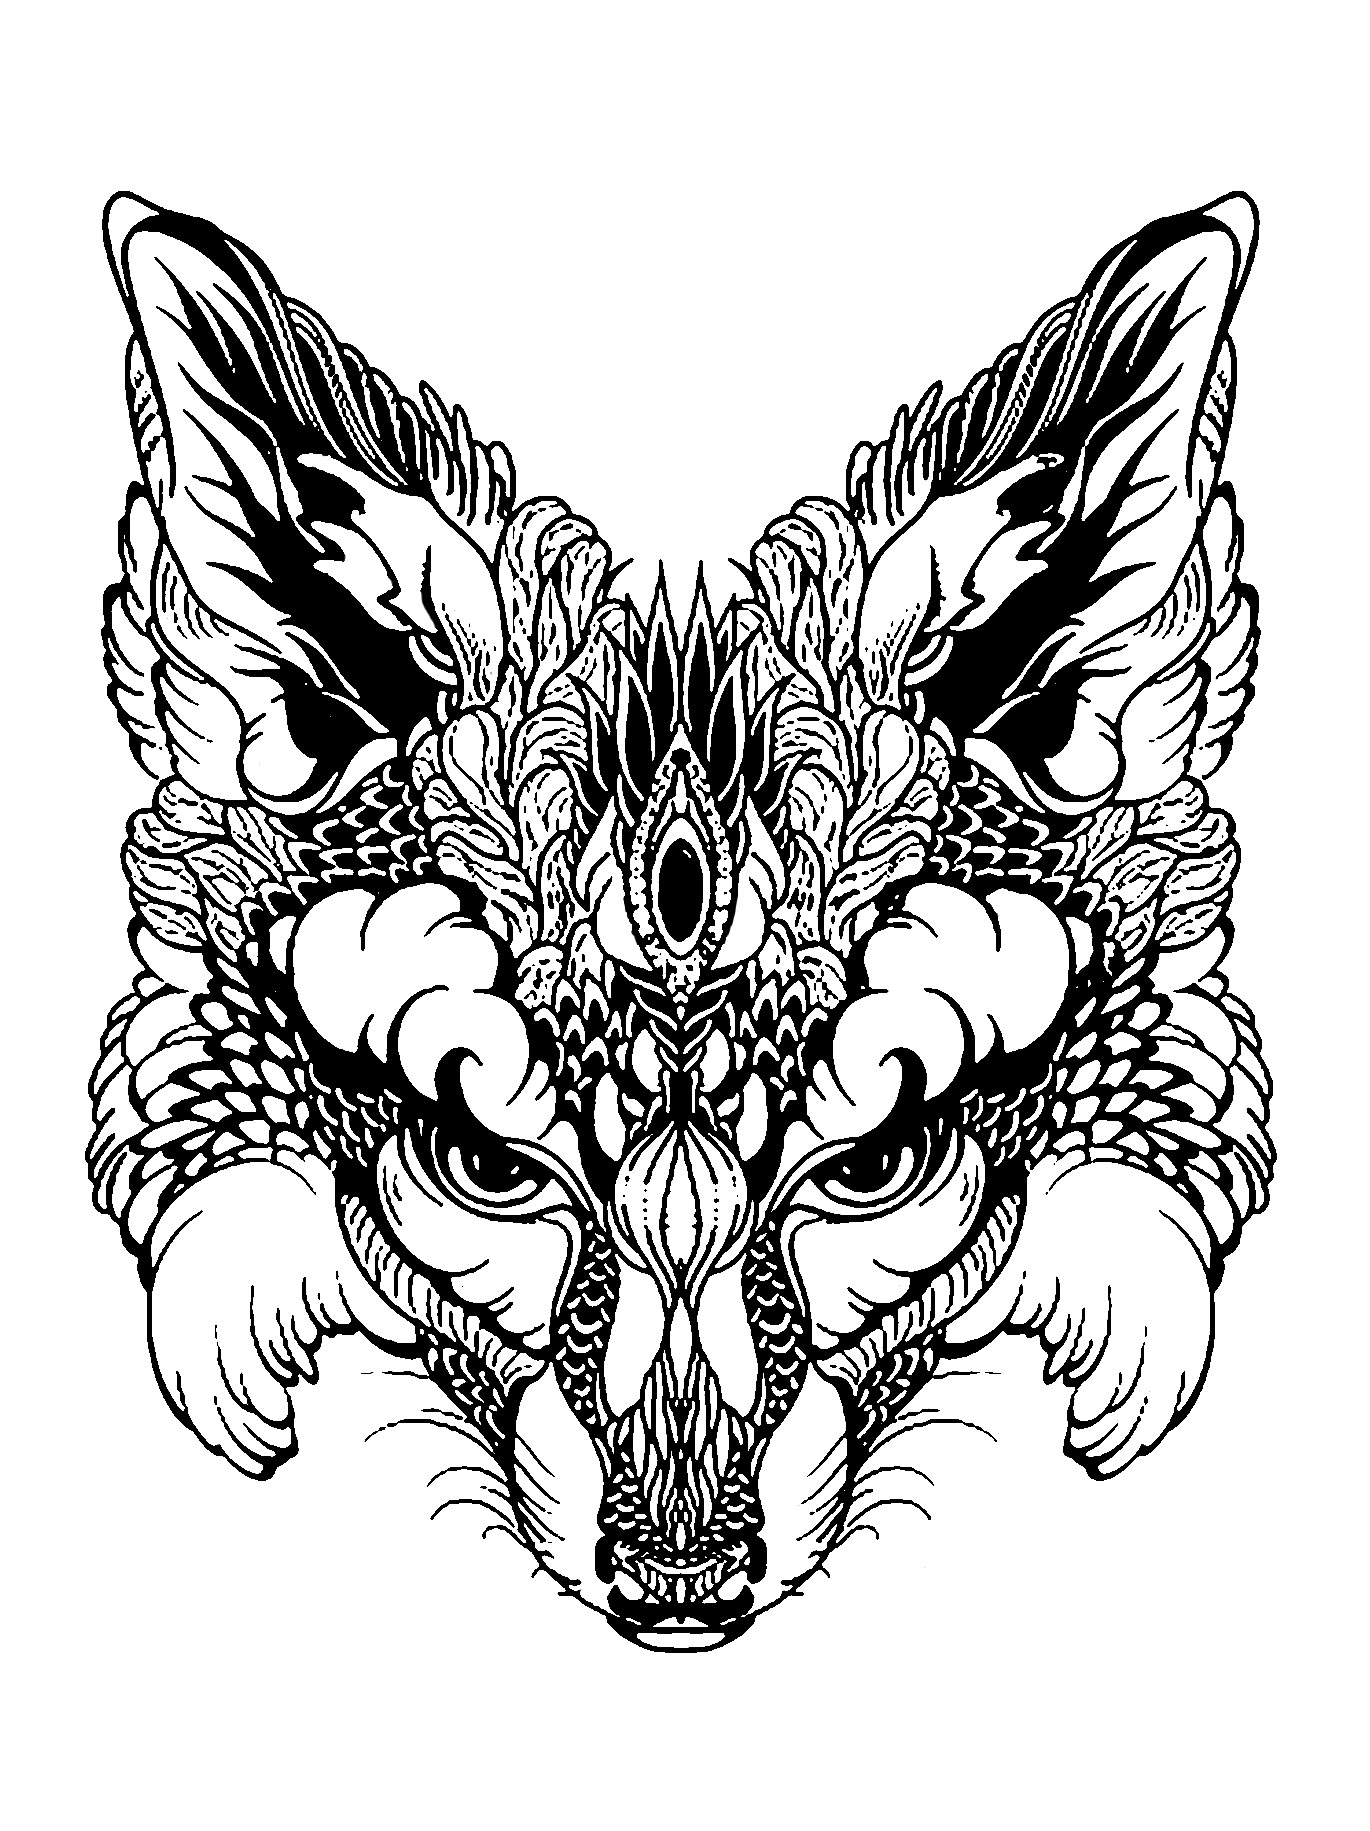 fox coloring games free printable fox coloring pages for kids fox games coloring